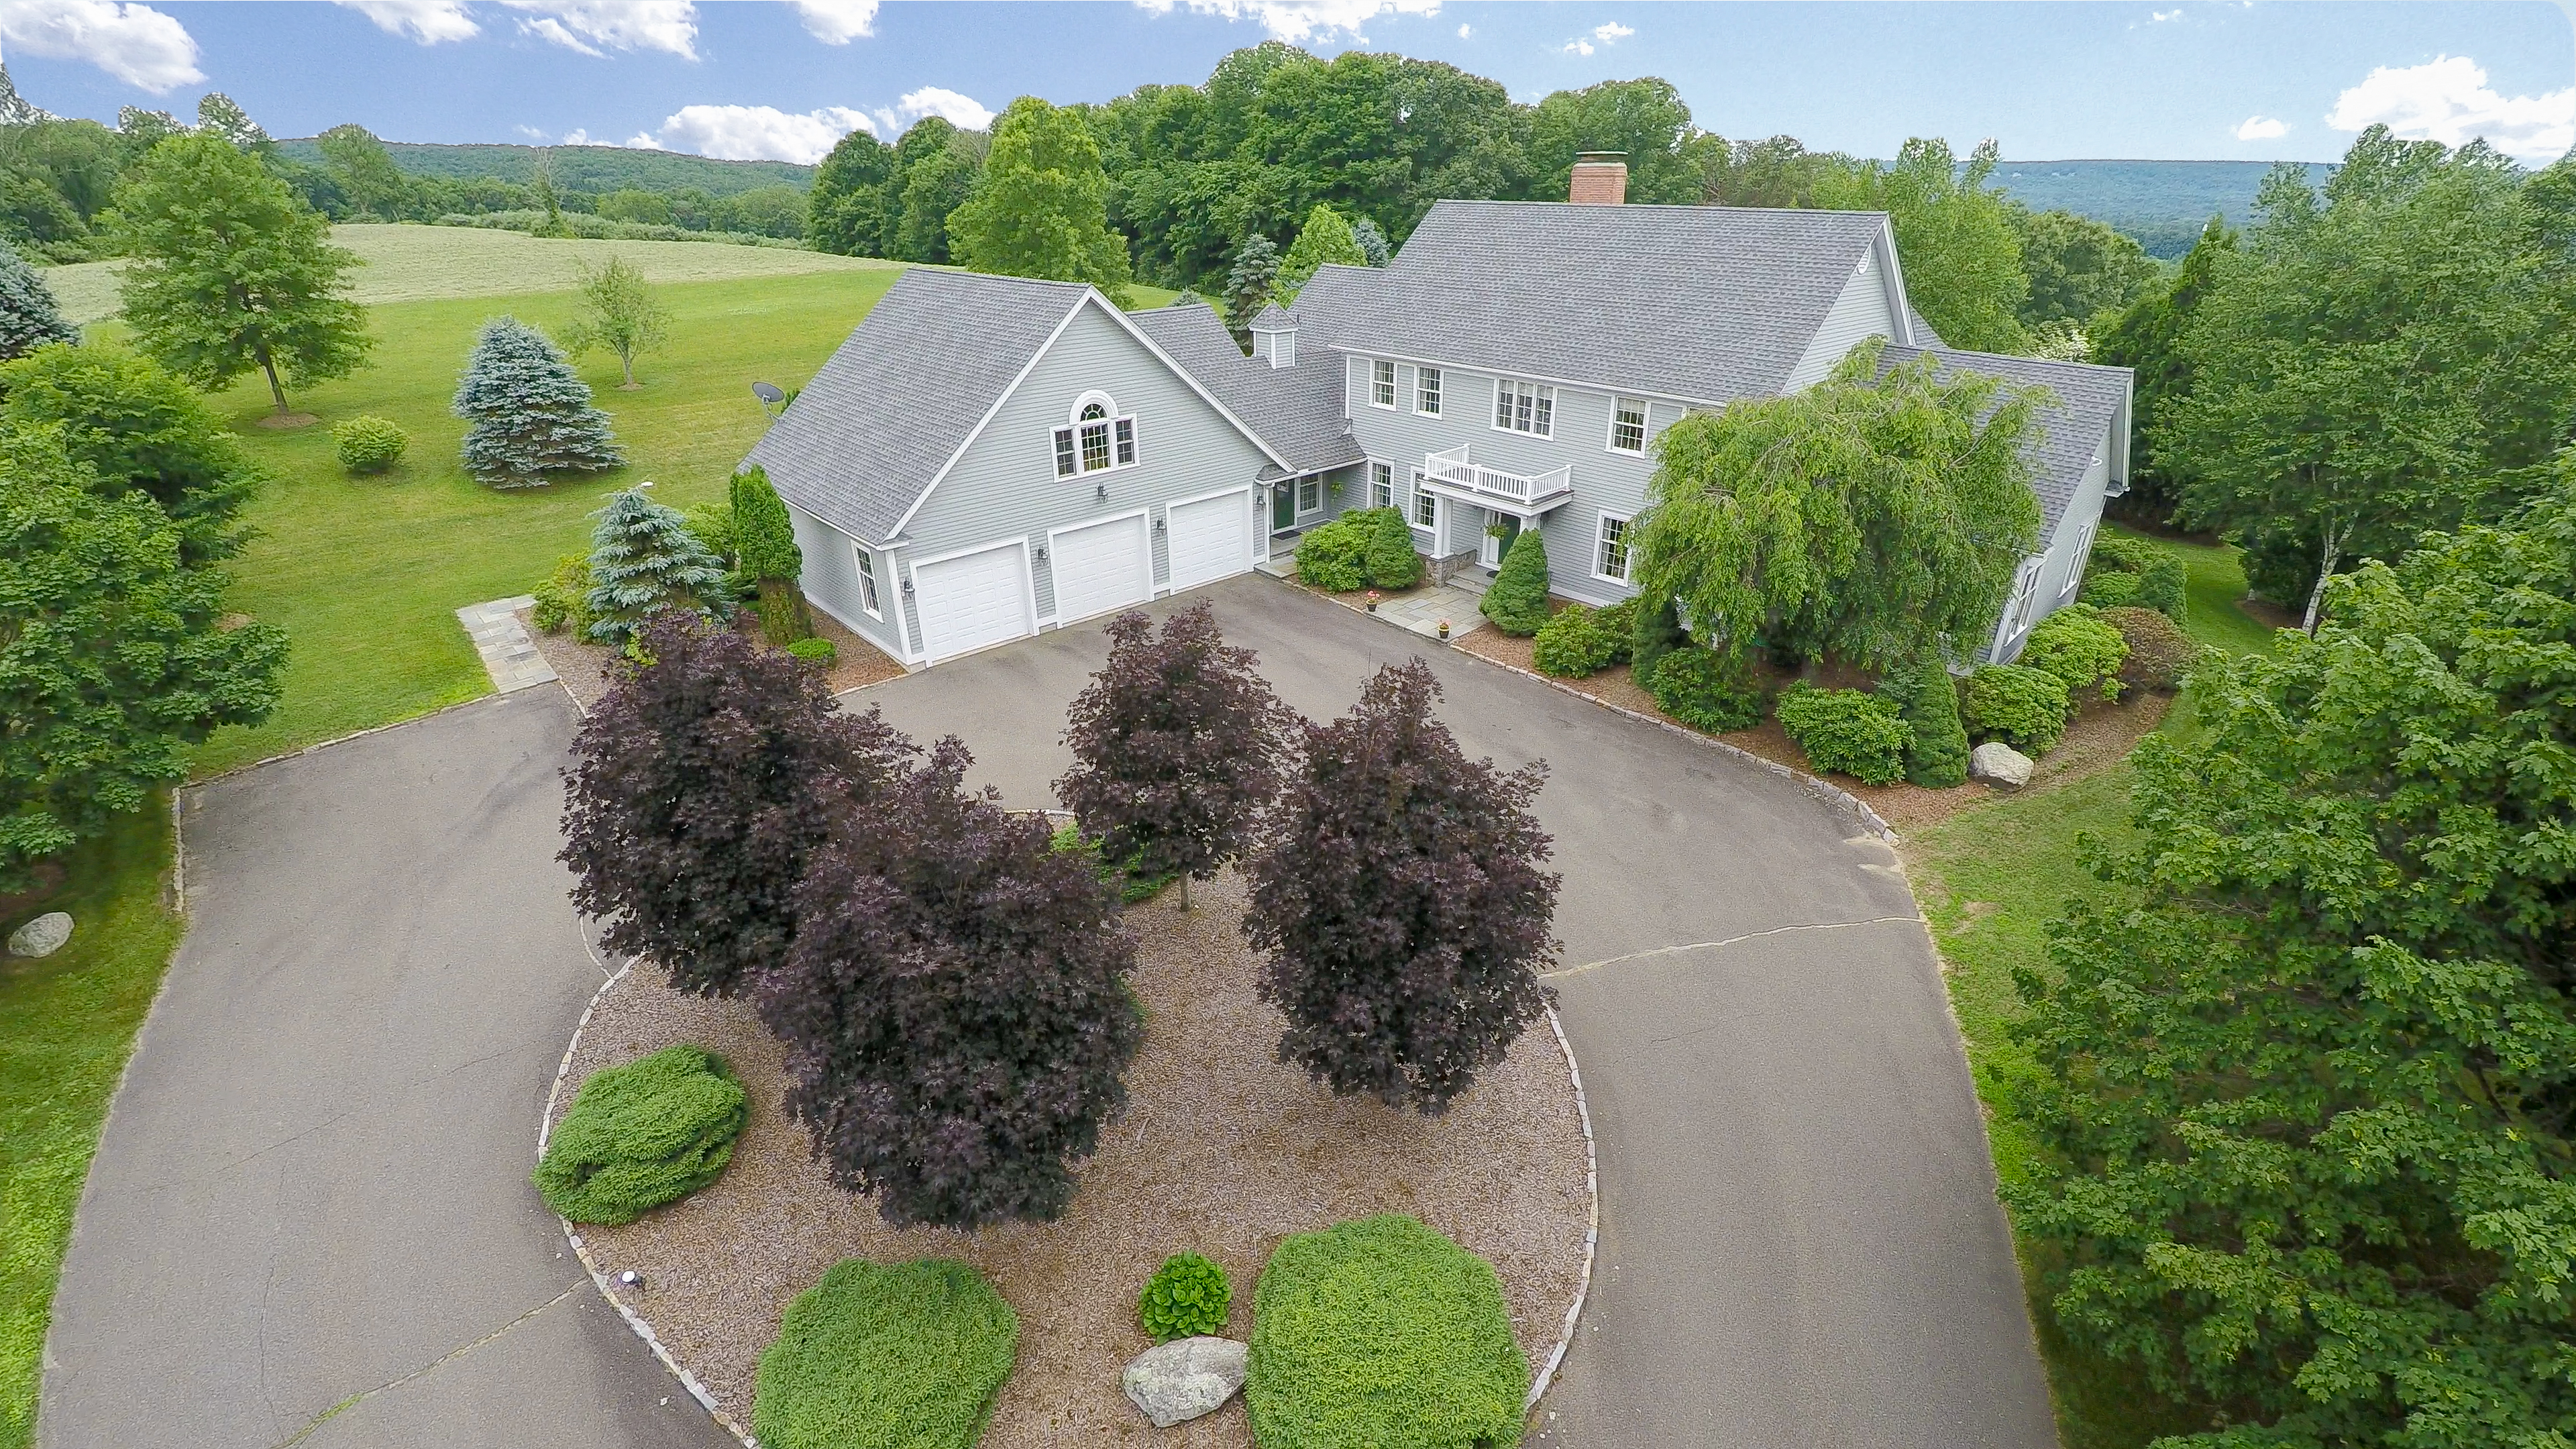 Single Family Home for Sale at Exclusive Estate 162 Middle Road Tpke Woodbury, Connecticut 06798 United States